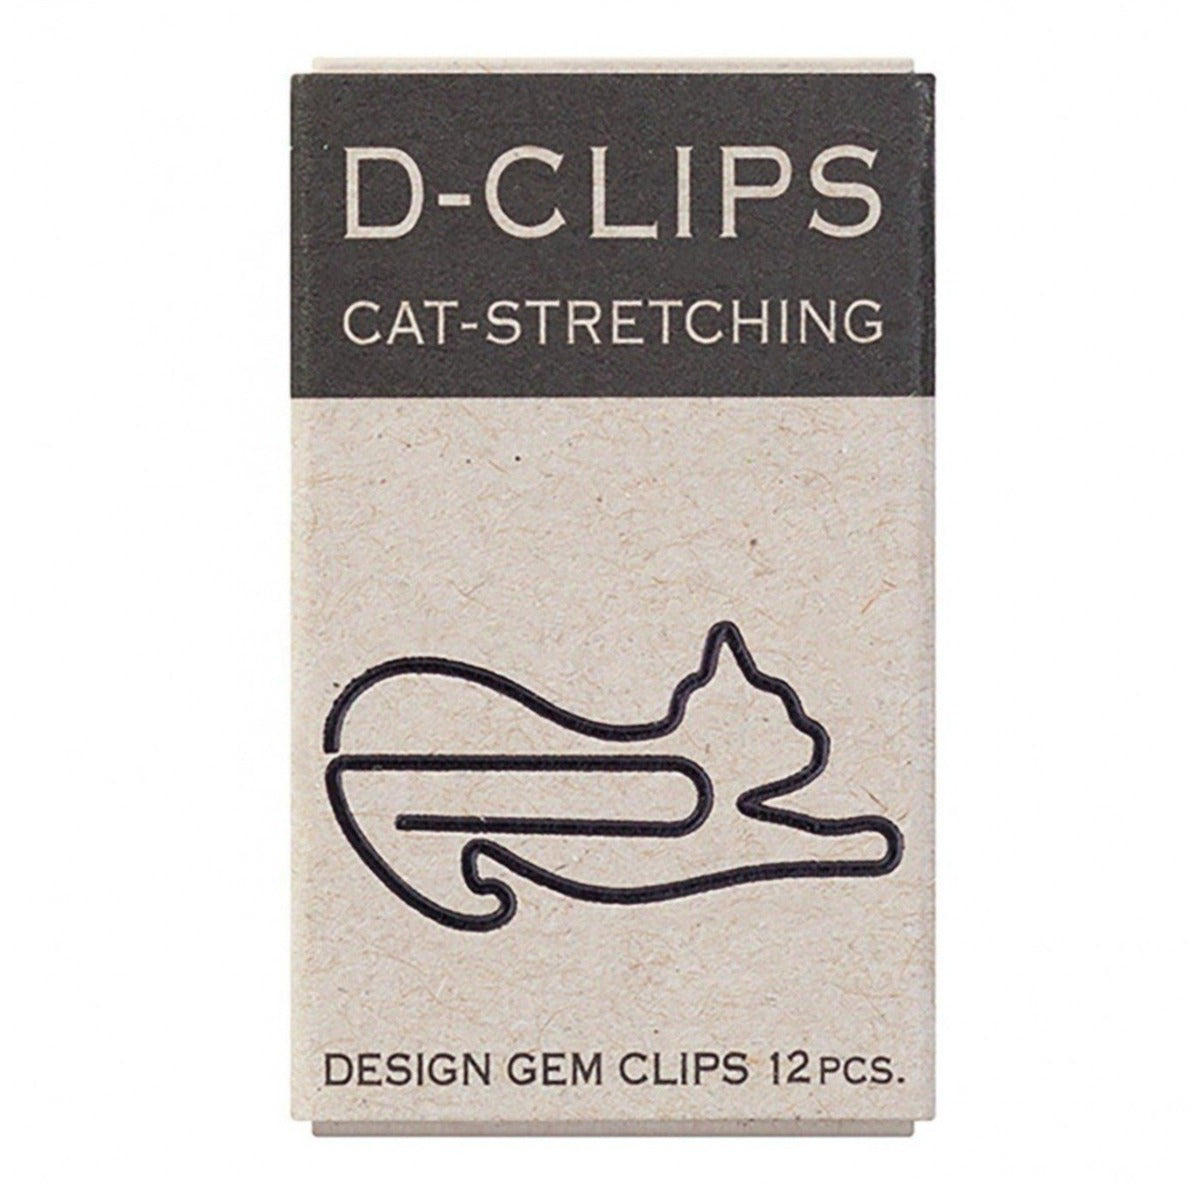 Cat Stretching Paper Clips